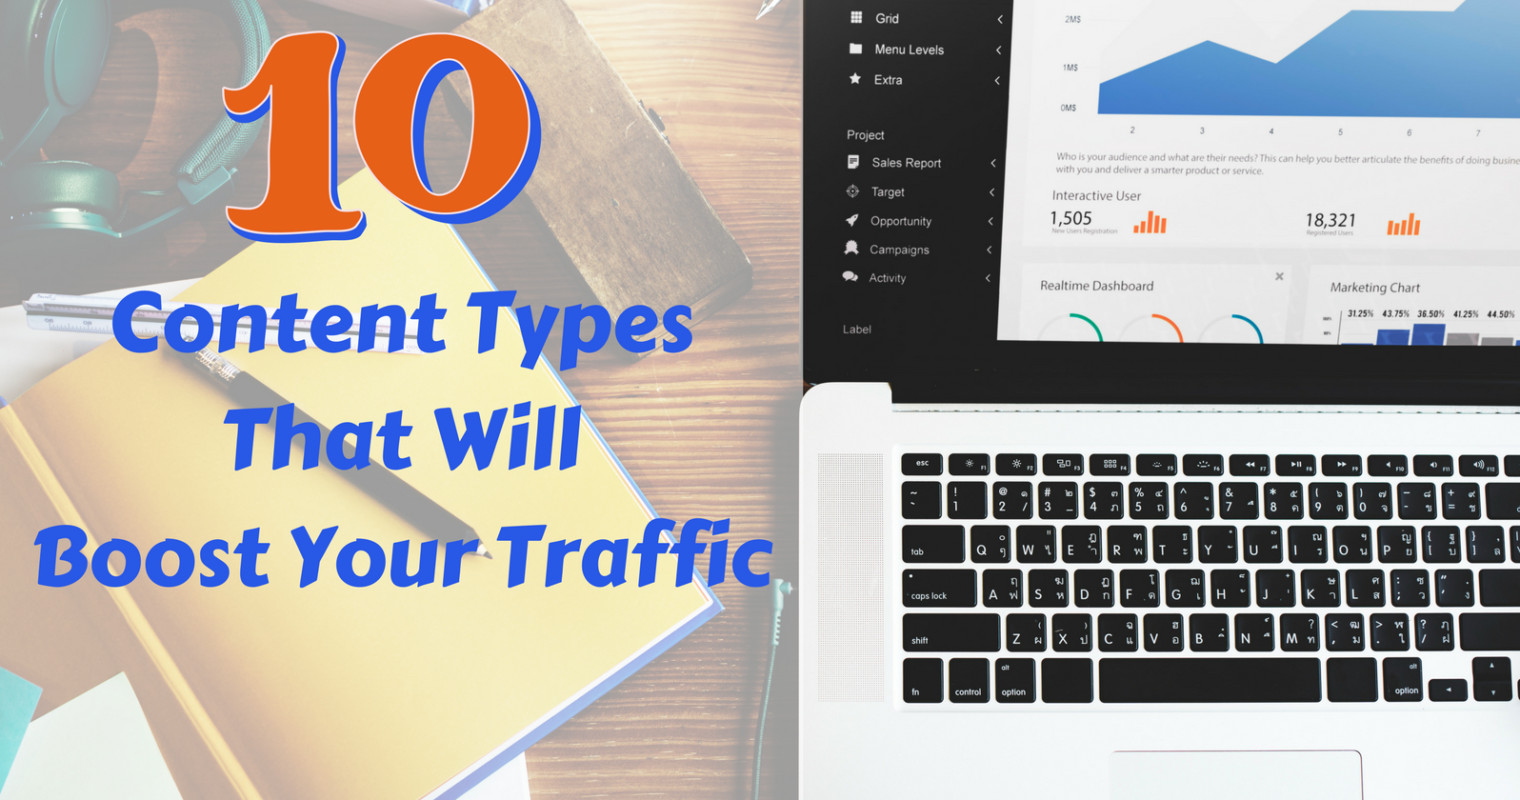 10 Content Types That Will Boost Your Traffic